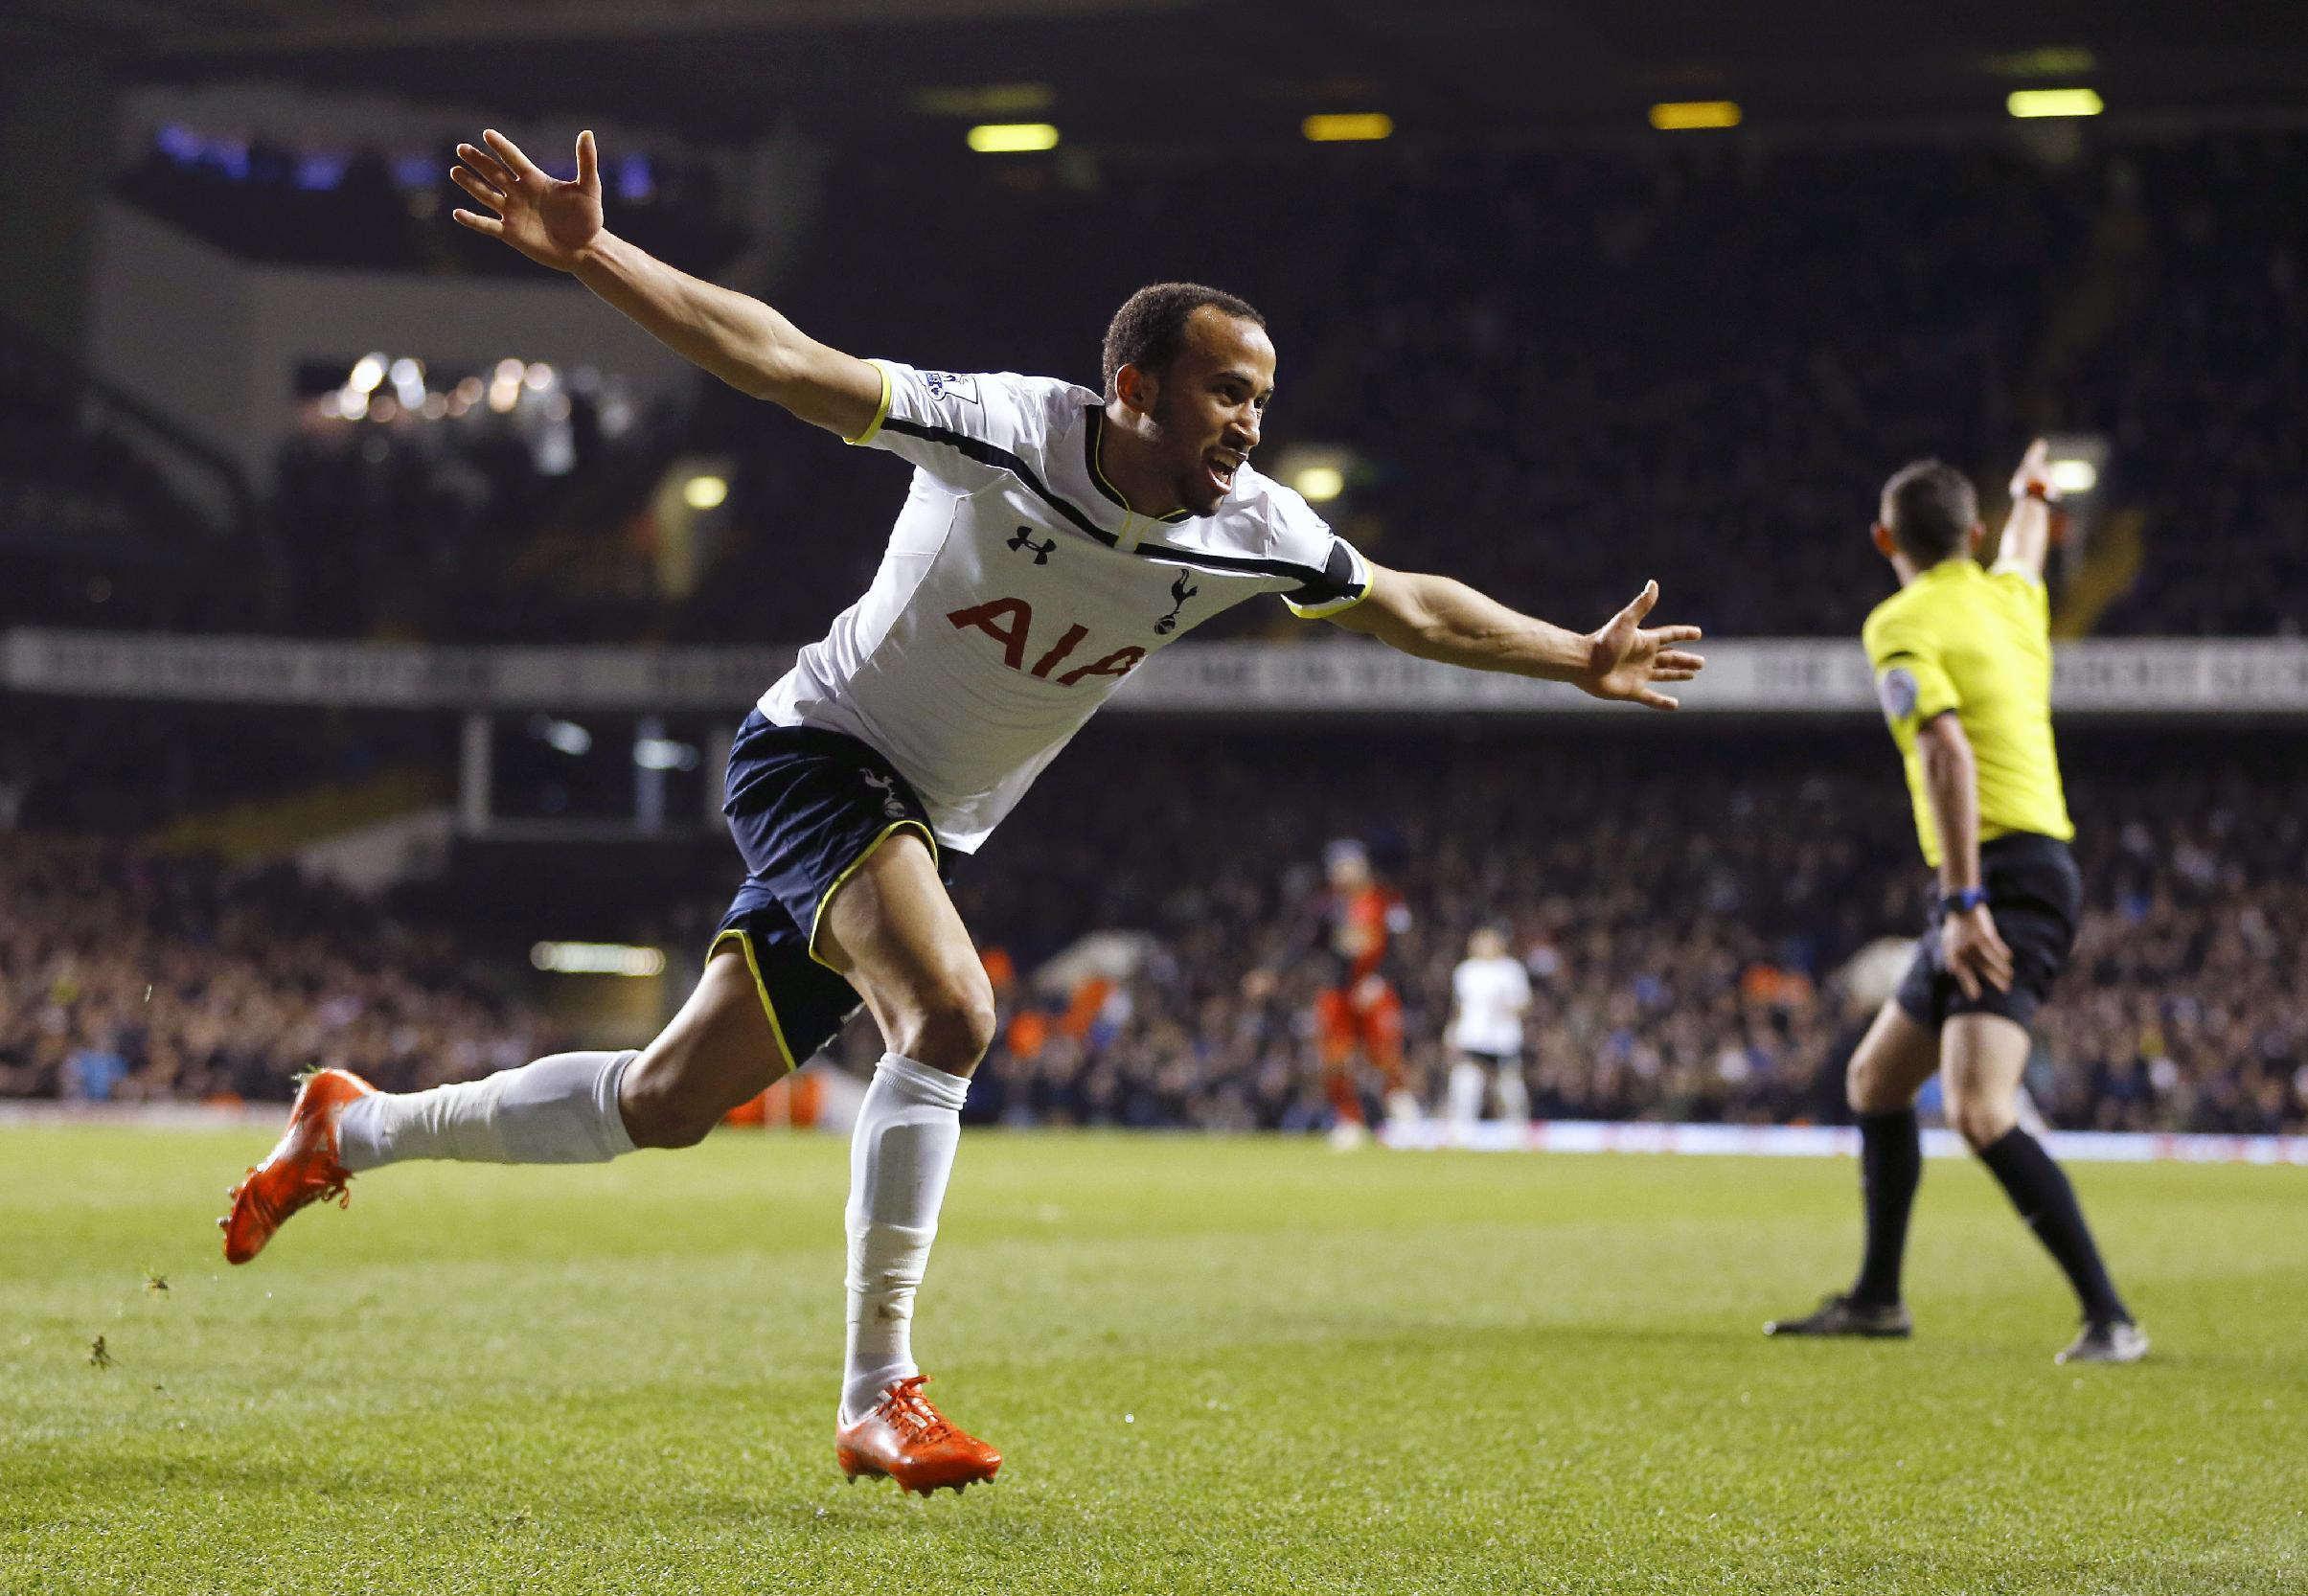 Spurs beat Swansea in EPL game delayed by player collapsing